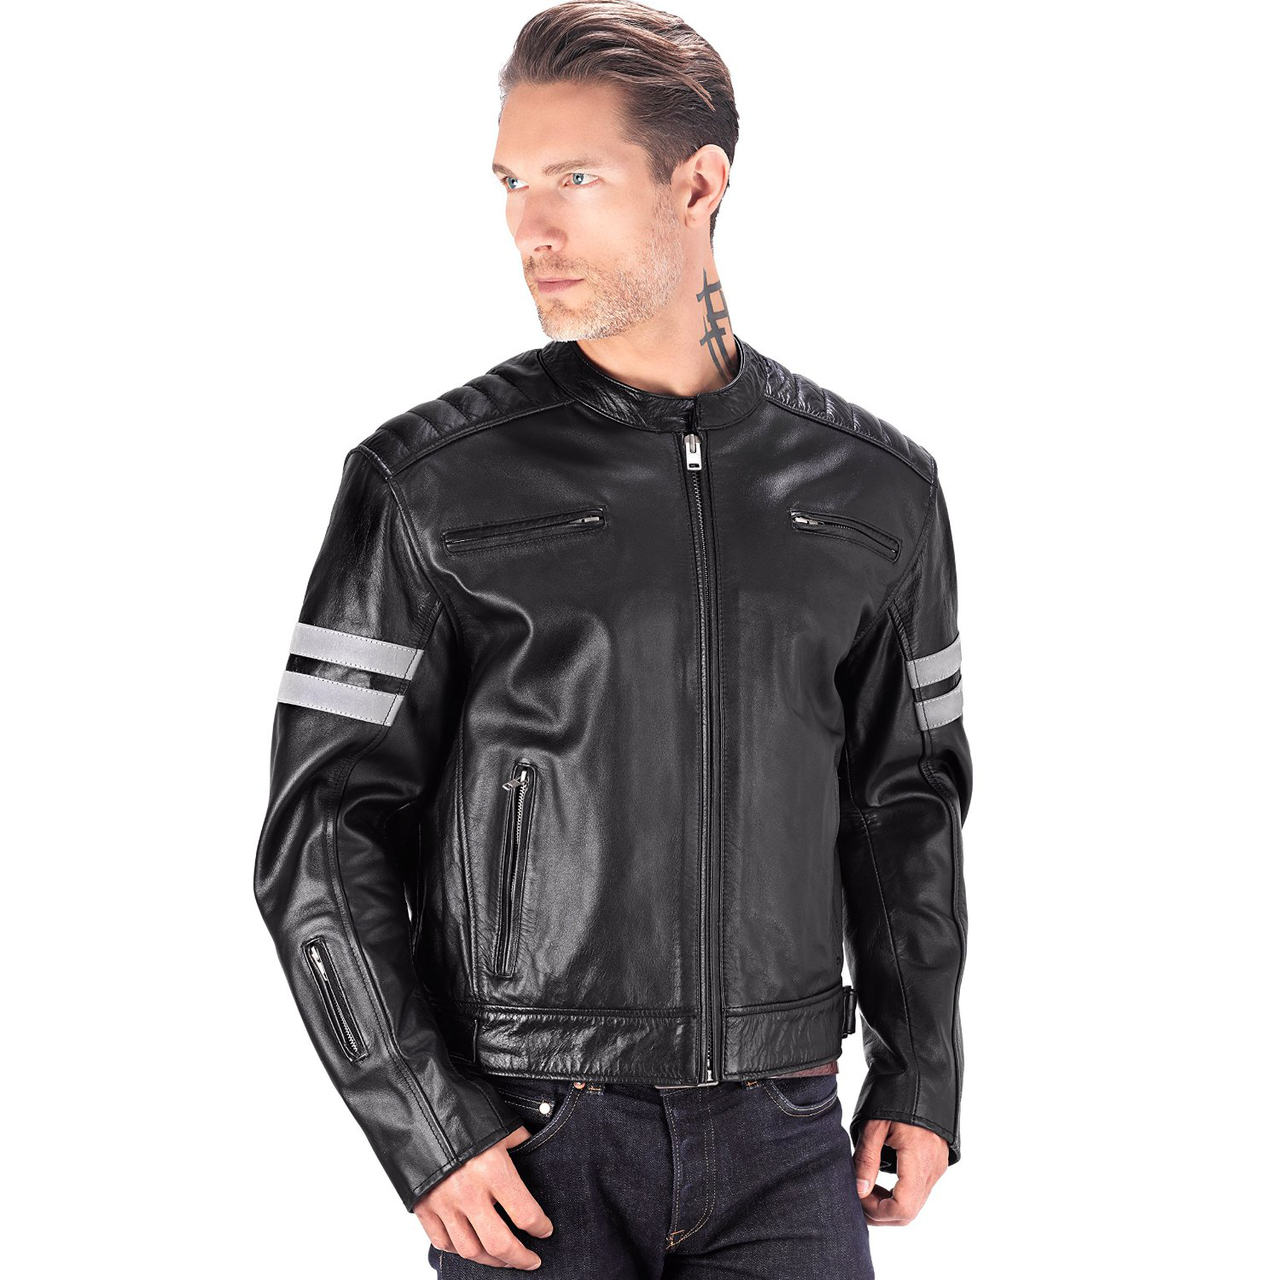 leather motorcycle jackets viking cycle bloodaxe leather motorcycle jacket for men front view ... cqvurro